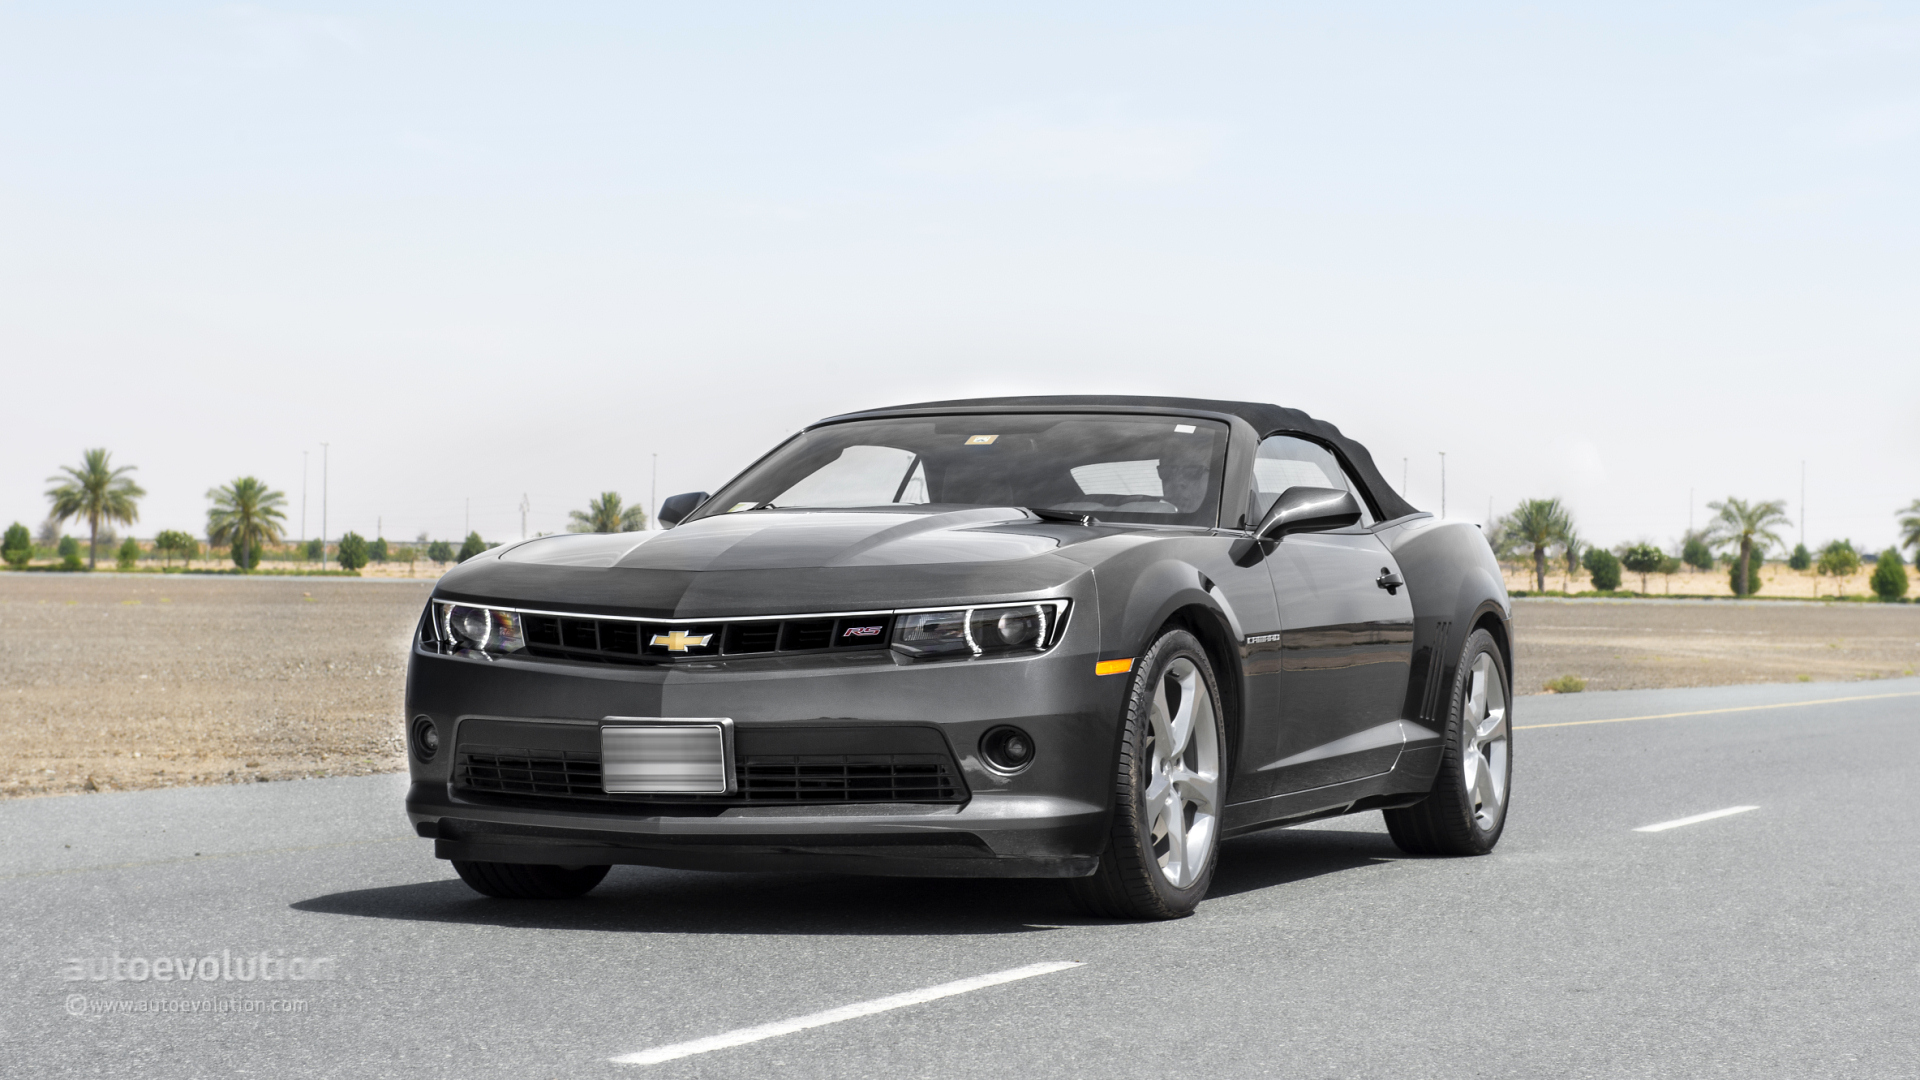 New And Used Tires Near Me >> 2014 CHEVROLET Camaro RS Convertible Review - autoevolution